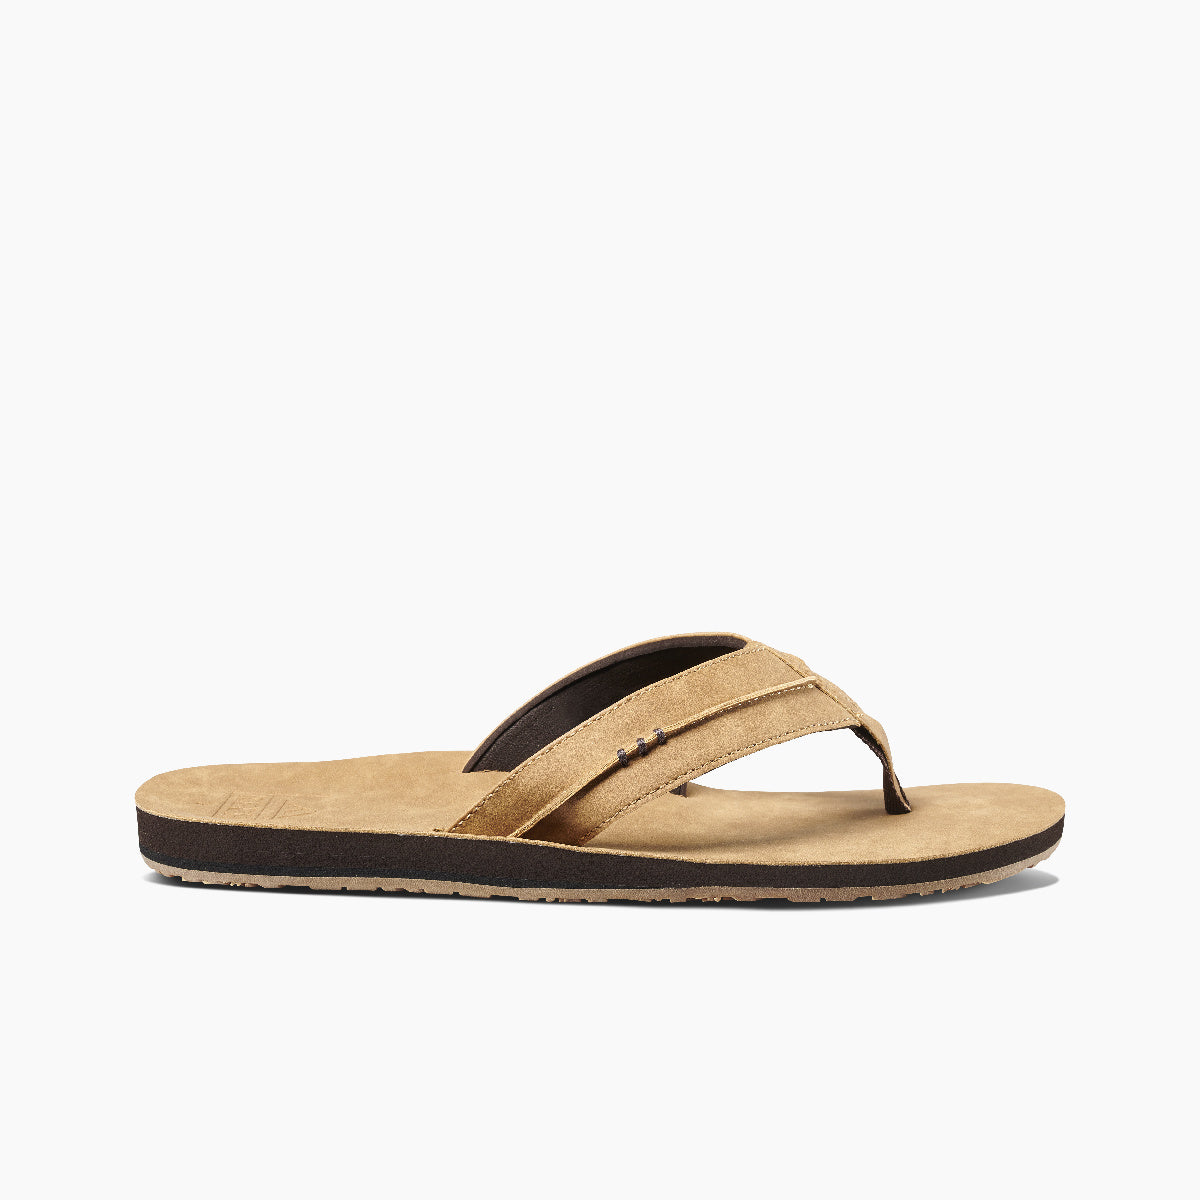 Reef Marbea SL Sandals - 88 Gear